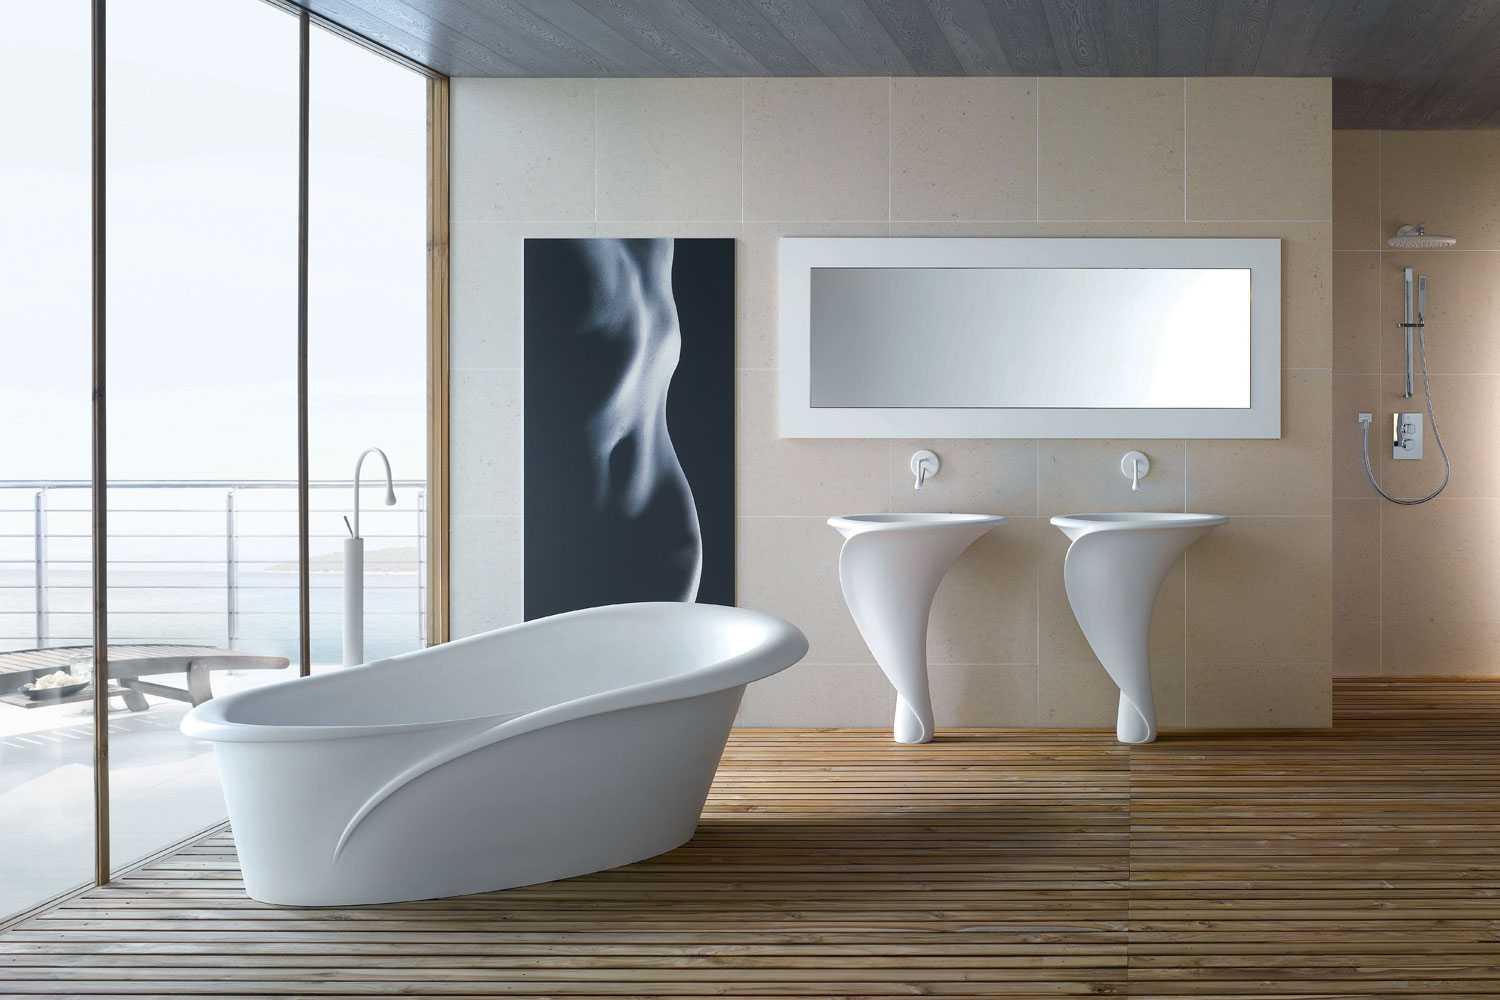 Lavabo A Colonna Design sinuous, sculpted forms among the trends at milan design